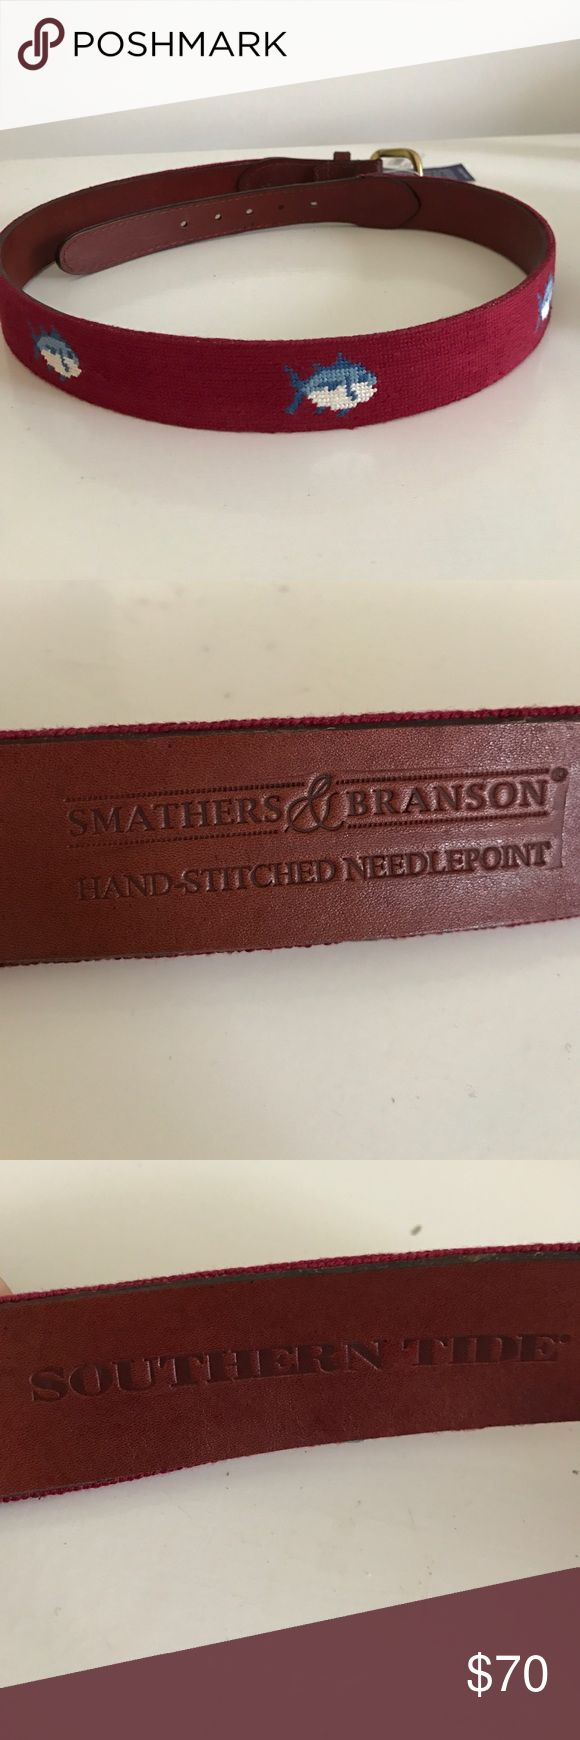 Smathers & Branson/ Southern Tide Needlepoint Belt NWT garnet colored needlepoint belt. Retails 165, great deal. Perfect for college game day! Southern tide fish logo is hand stitched on belt. Offers welcome. Smathers and Branson Accessories Belts